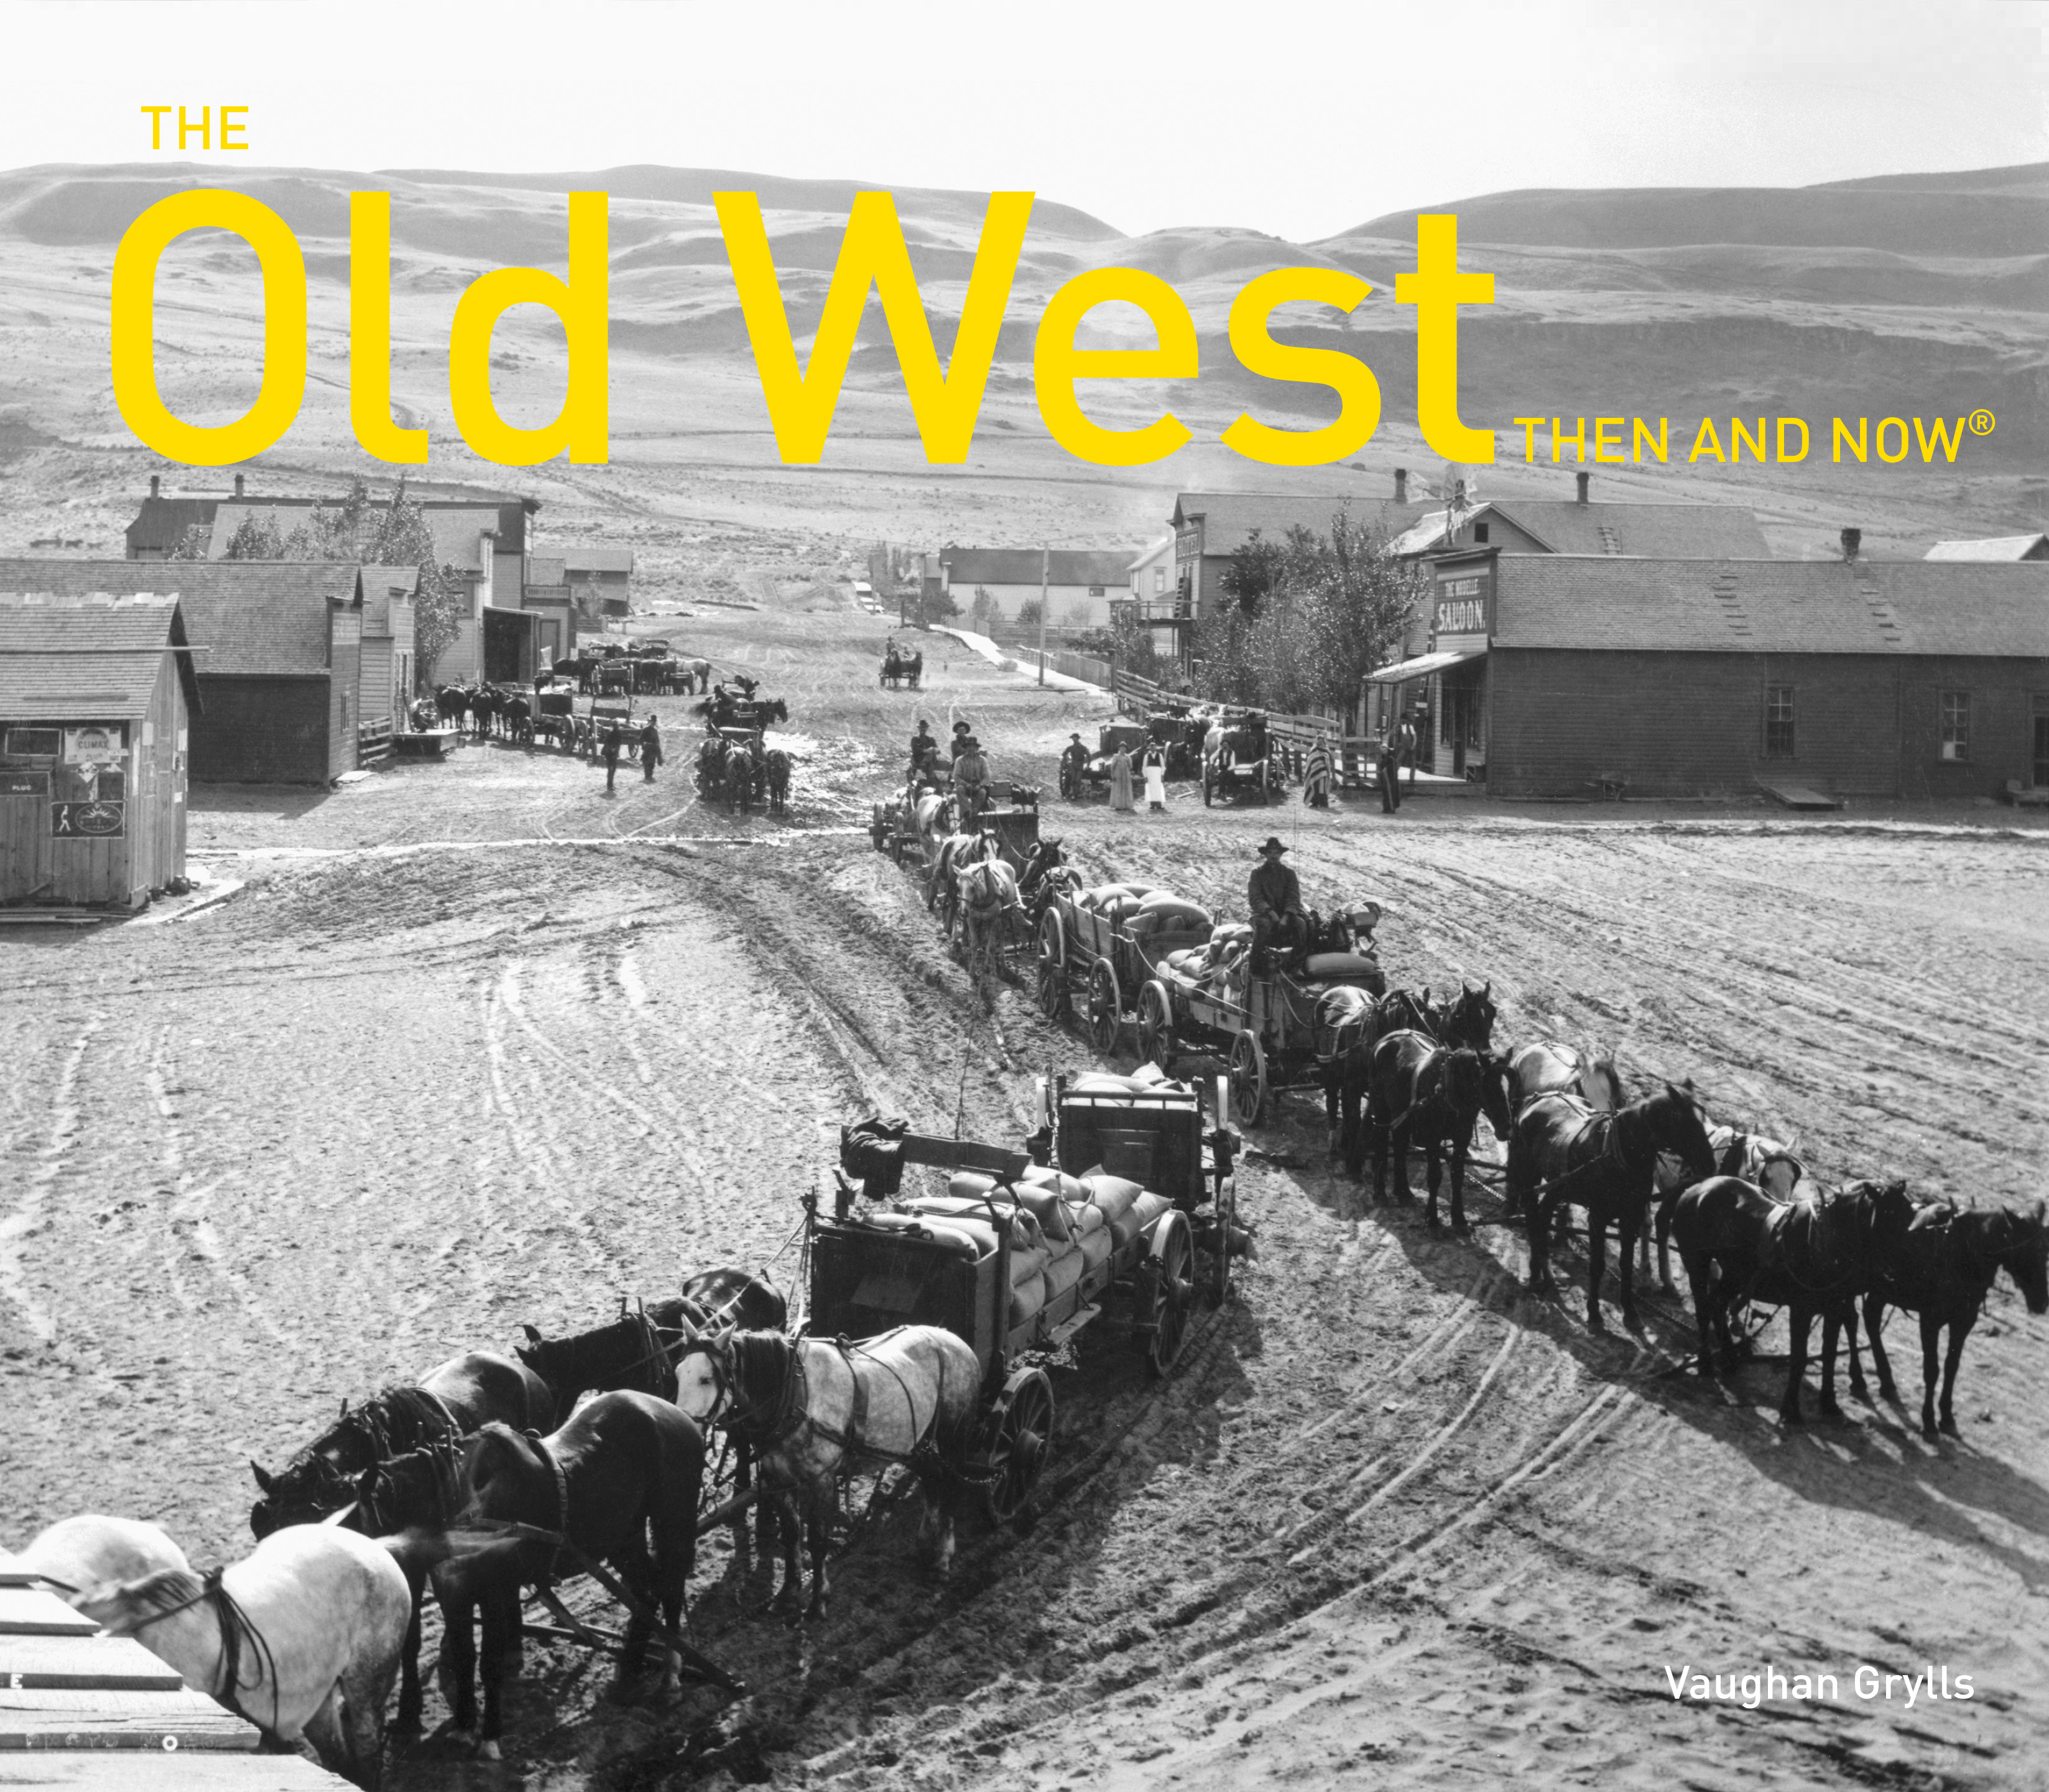 The Old West Then and Now®